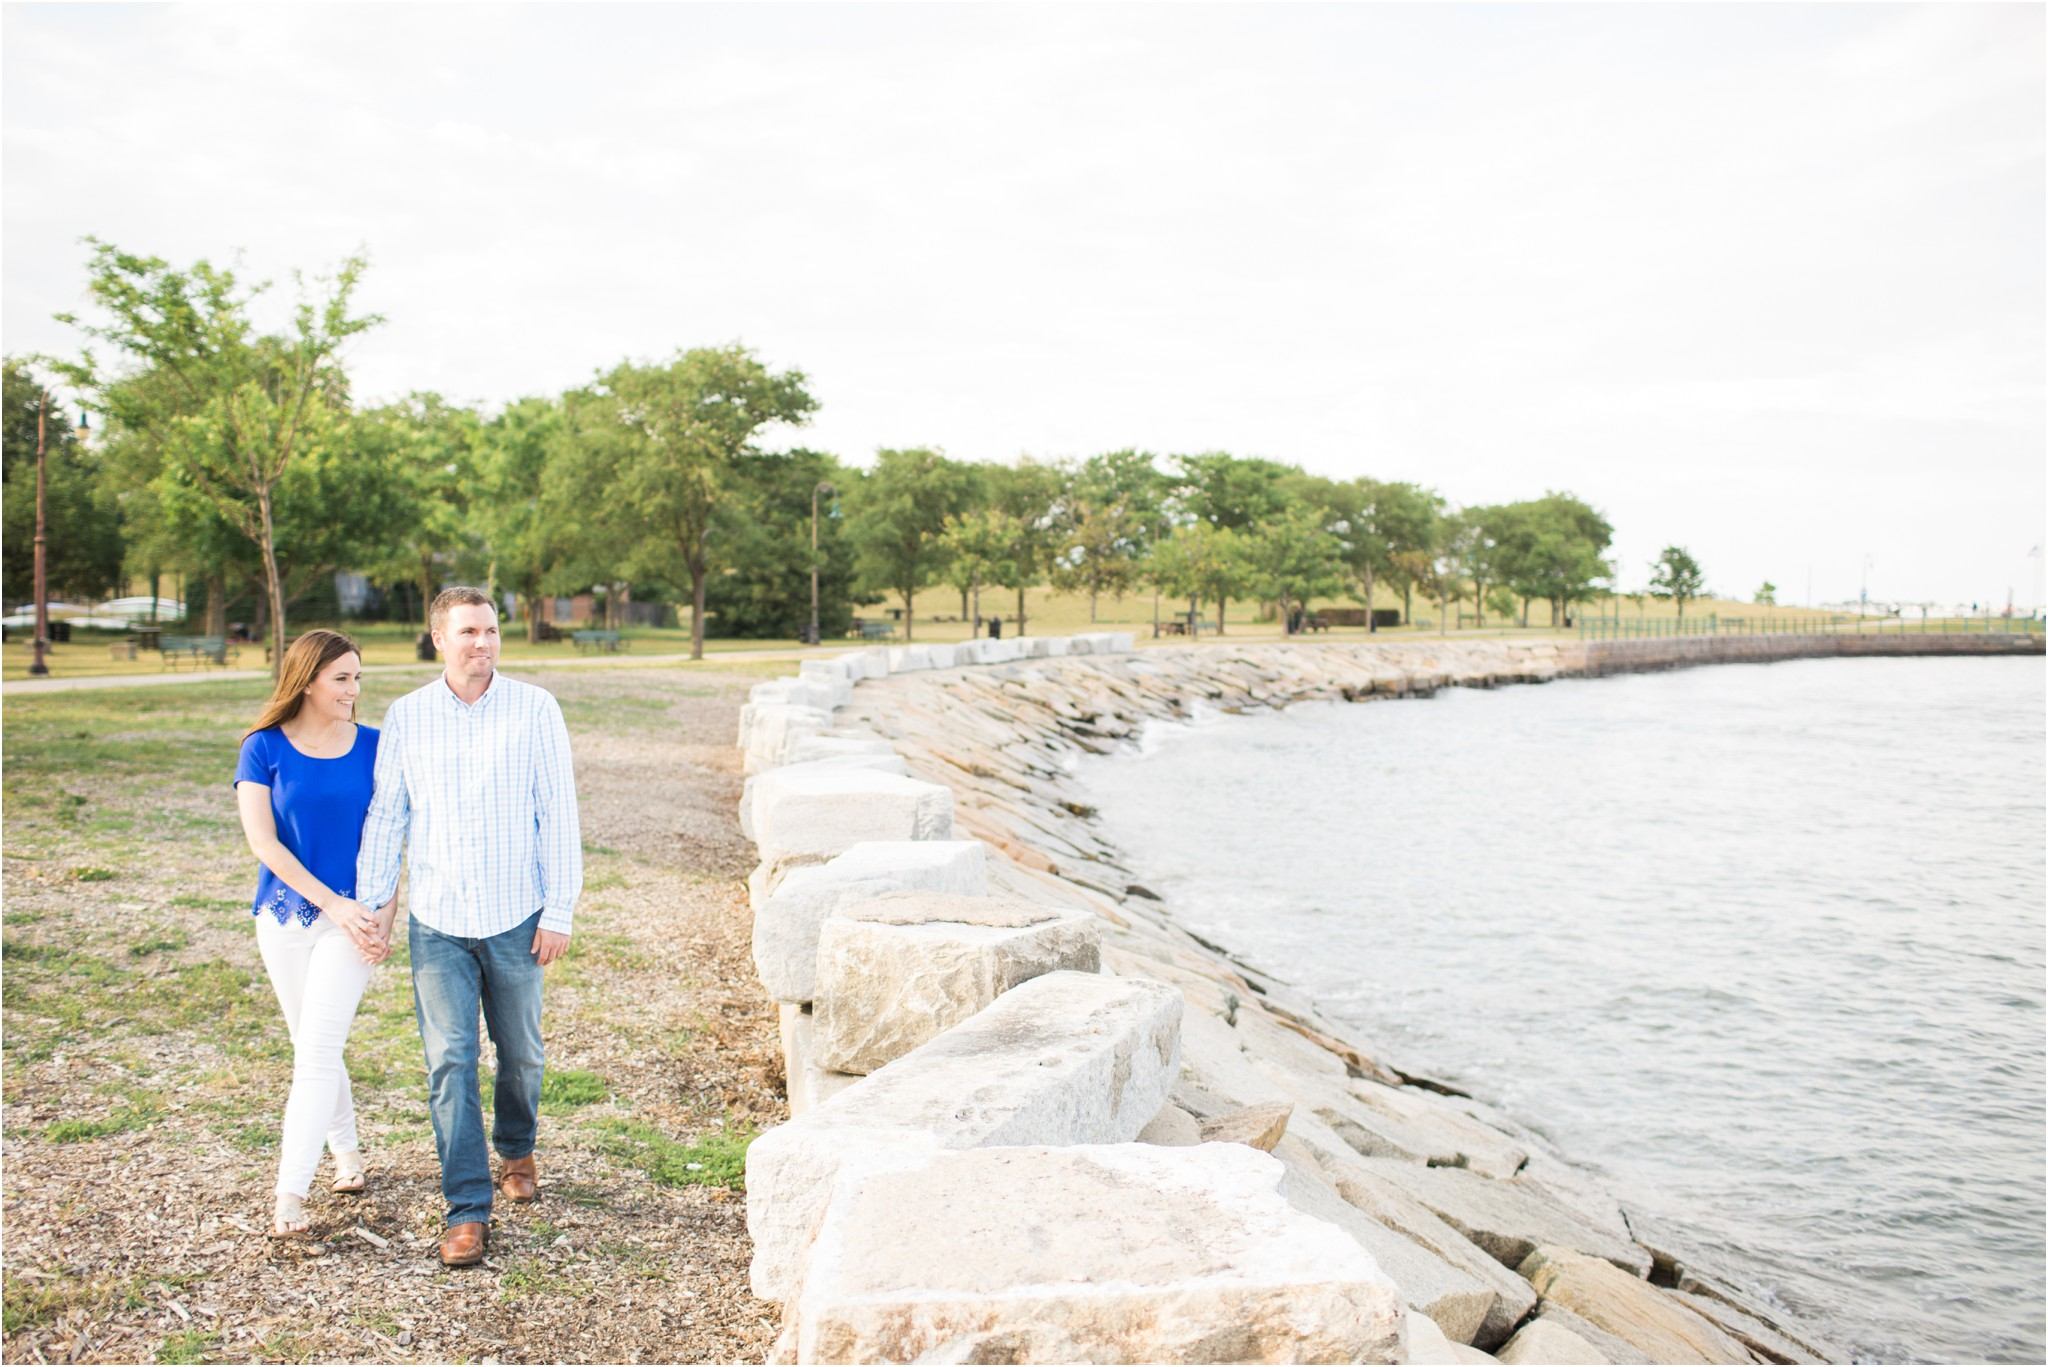 boston_engagement_session_Deborah_Zoe_0008.JPG